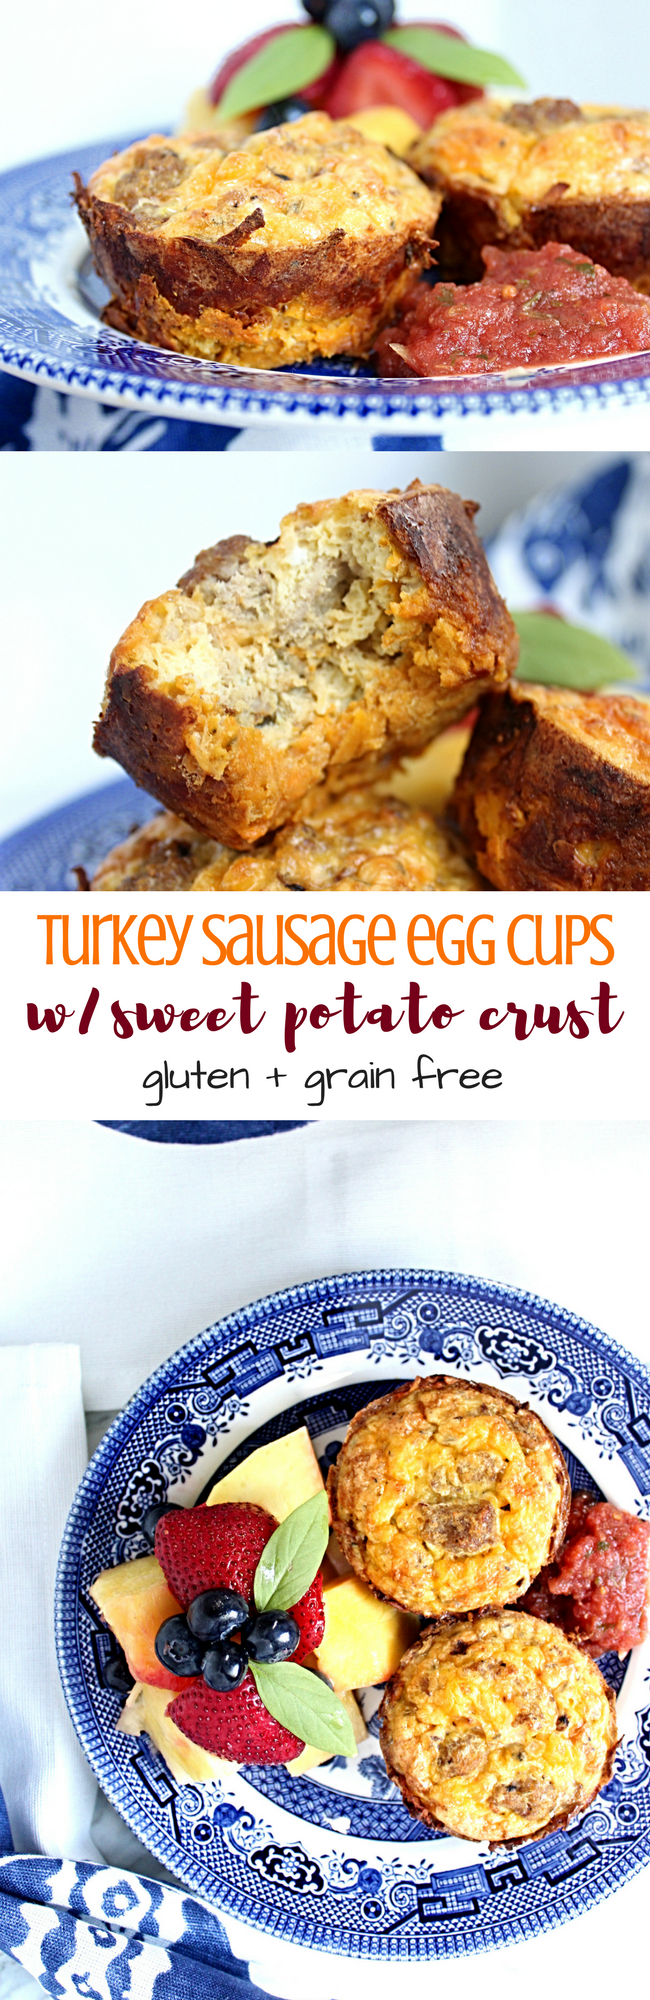 Turkey Sausage Egg Cups + Sweet Potato Crust [Guest Post by Macarons and Lavender] | Personally Paleo